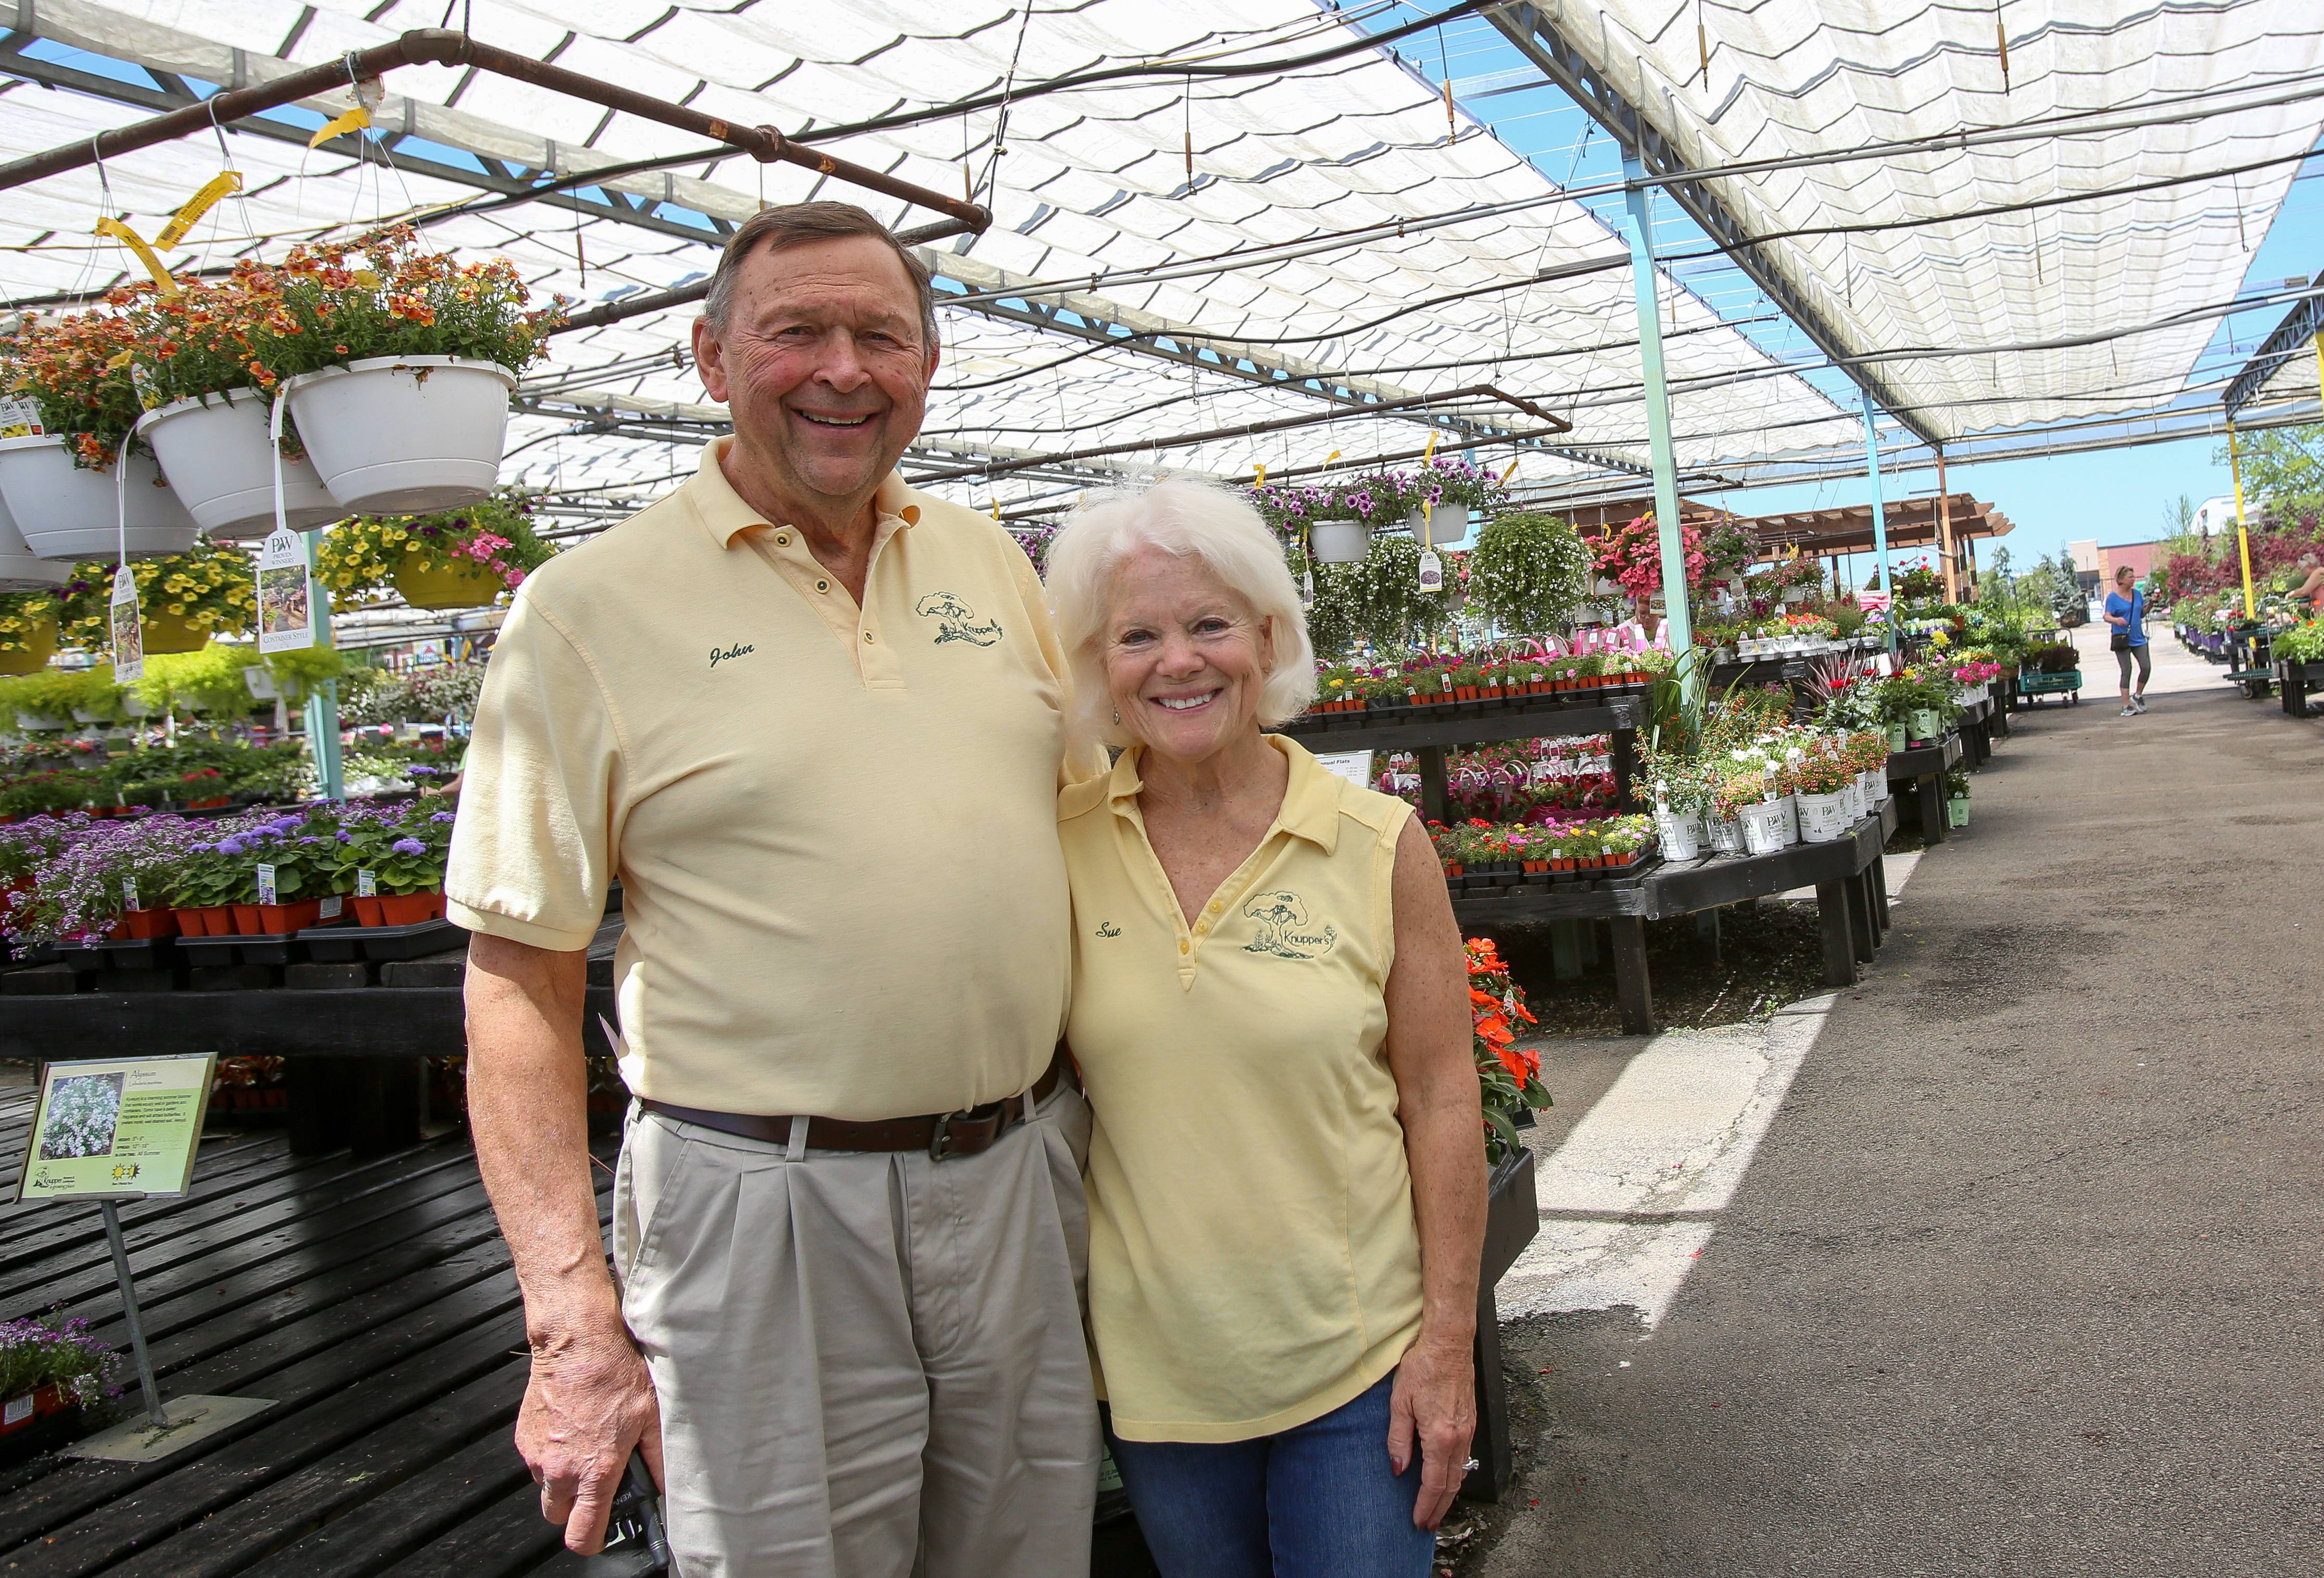 'Such a shock that it's closing': Knupper Nursery closing after 88 years